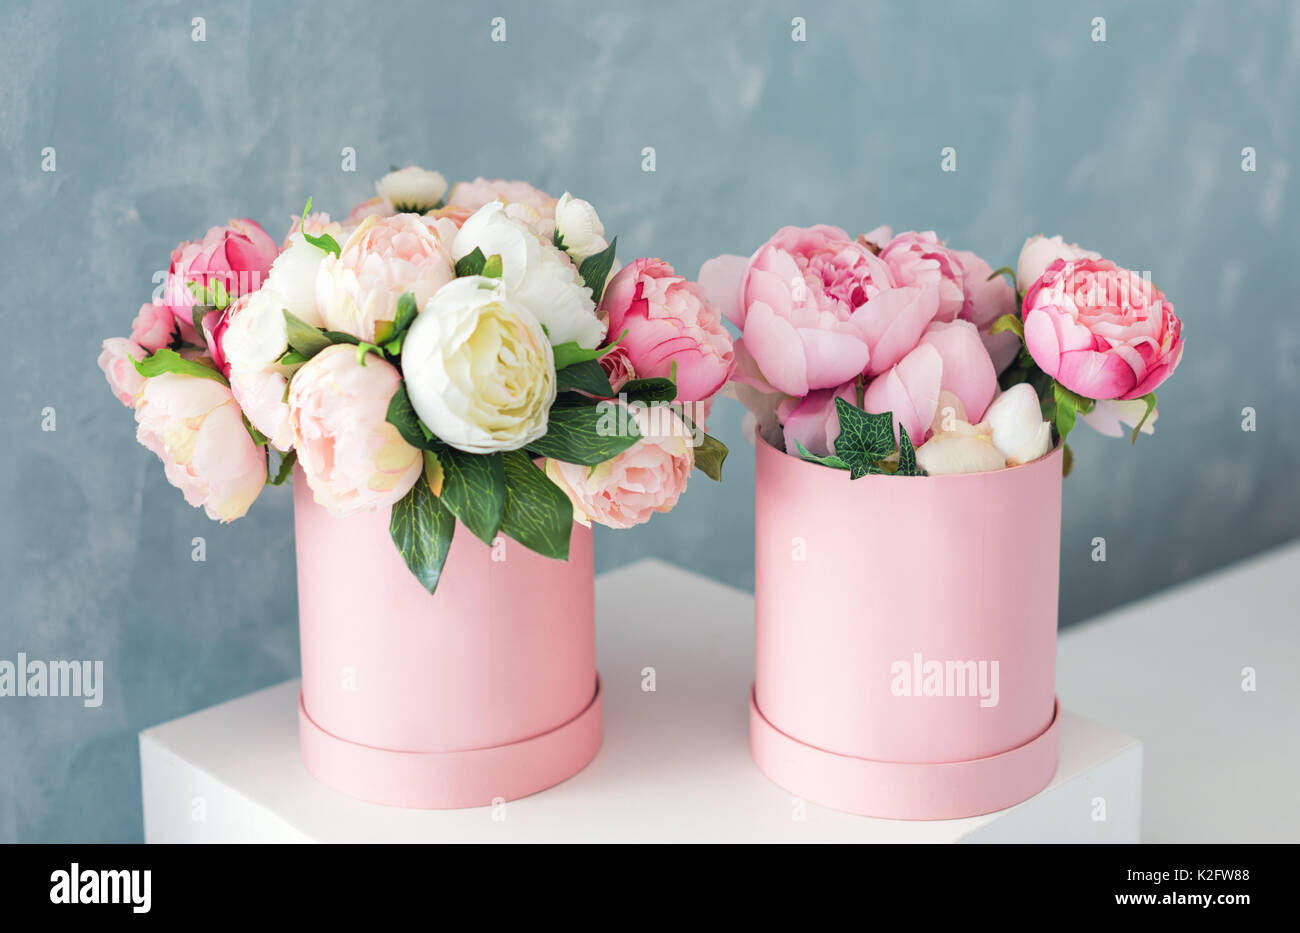 Flower box white wall stock photos flower box white wall stock flowers in round luxury present boxes bouquet of pink and white peonies in paper box izmirmasajfo